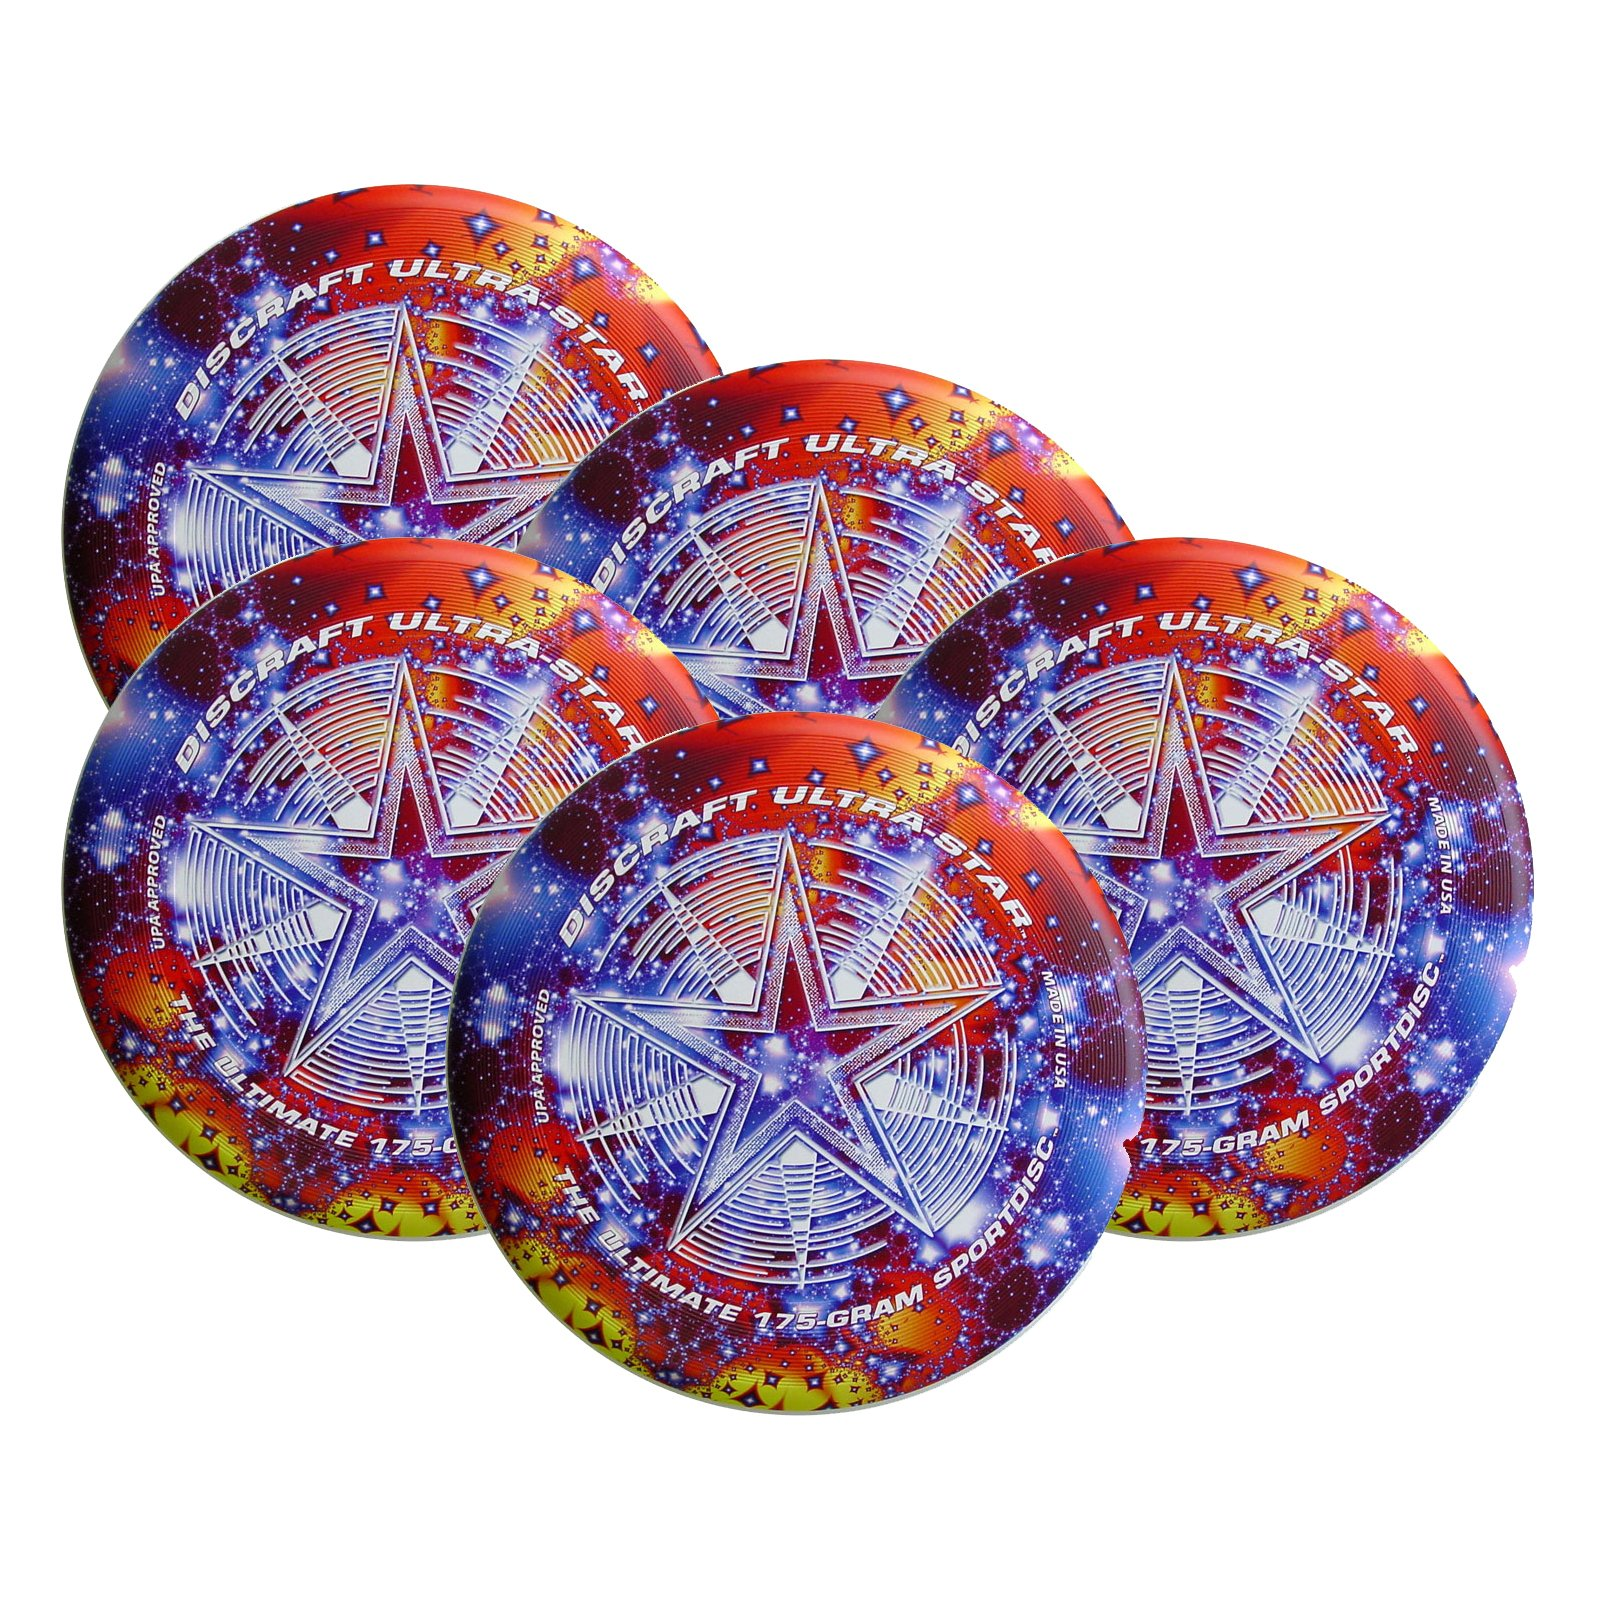 Discraft SuperColor Ultra-Star 175g Ultimate Sportdisc Starscape (5 Pack) by Discraft